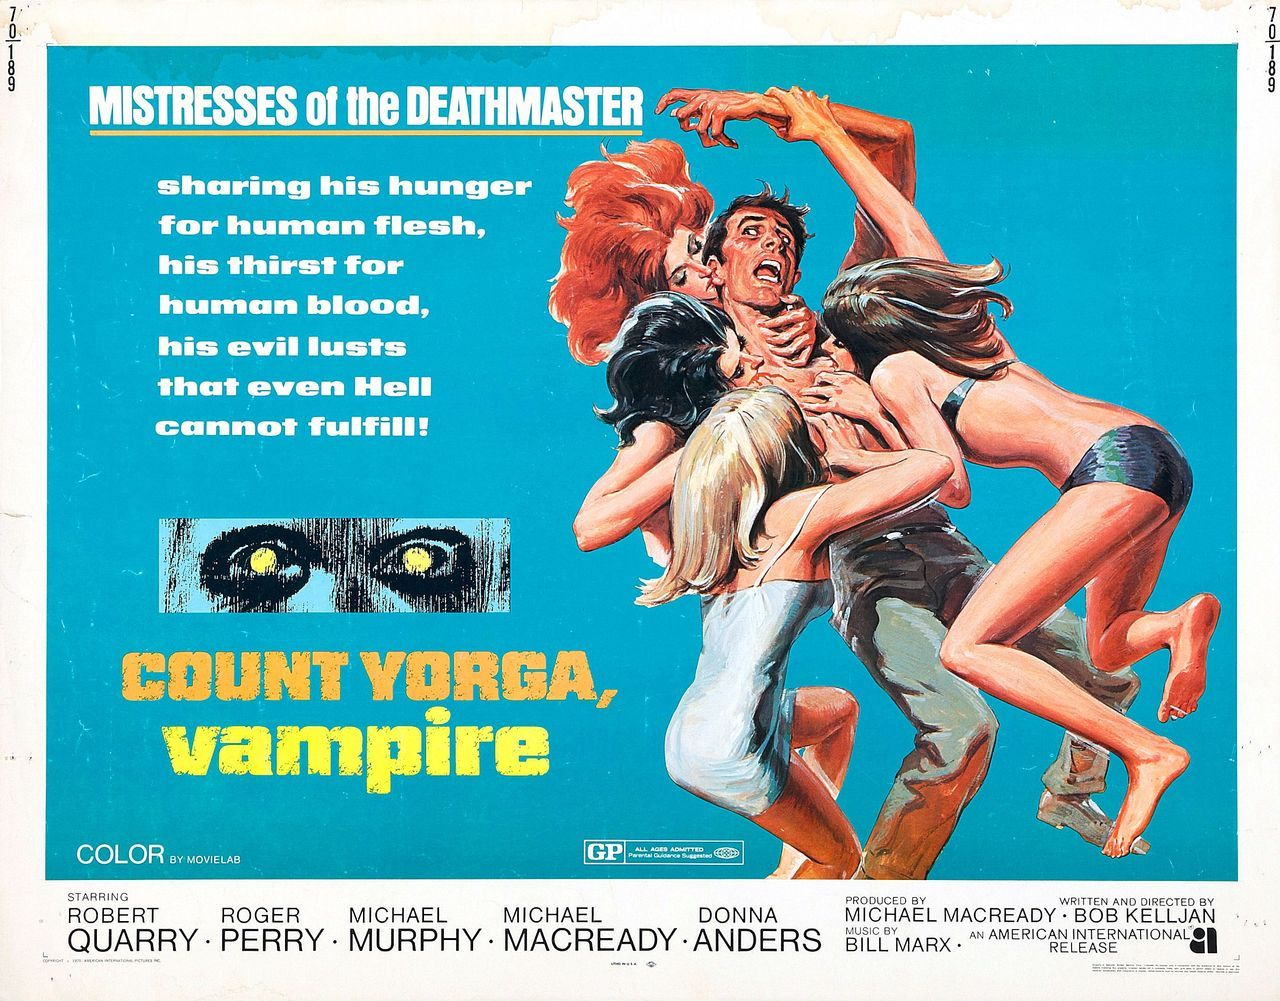 Movie poster for Count Yorga, Vampire